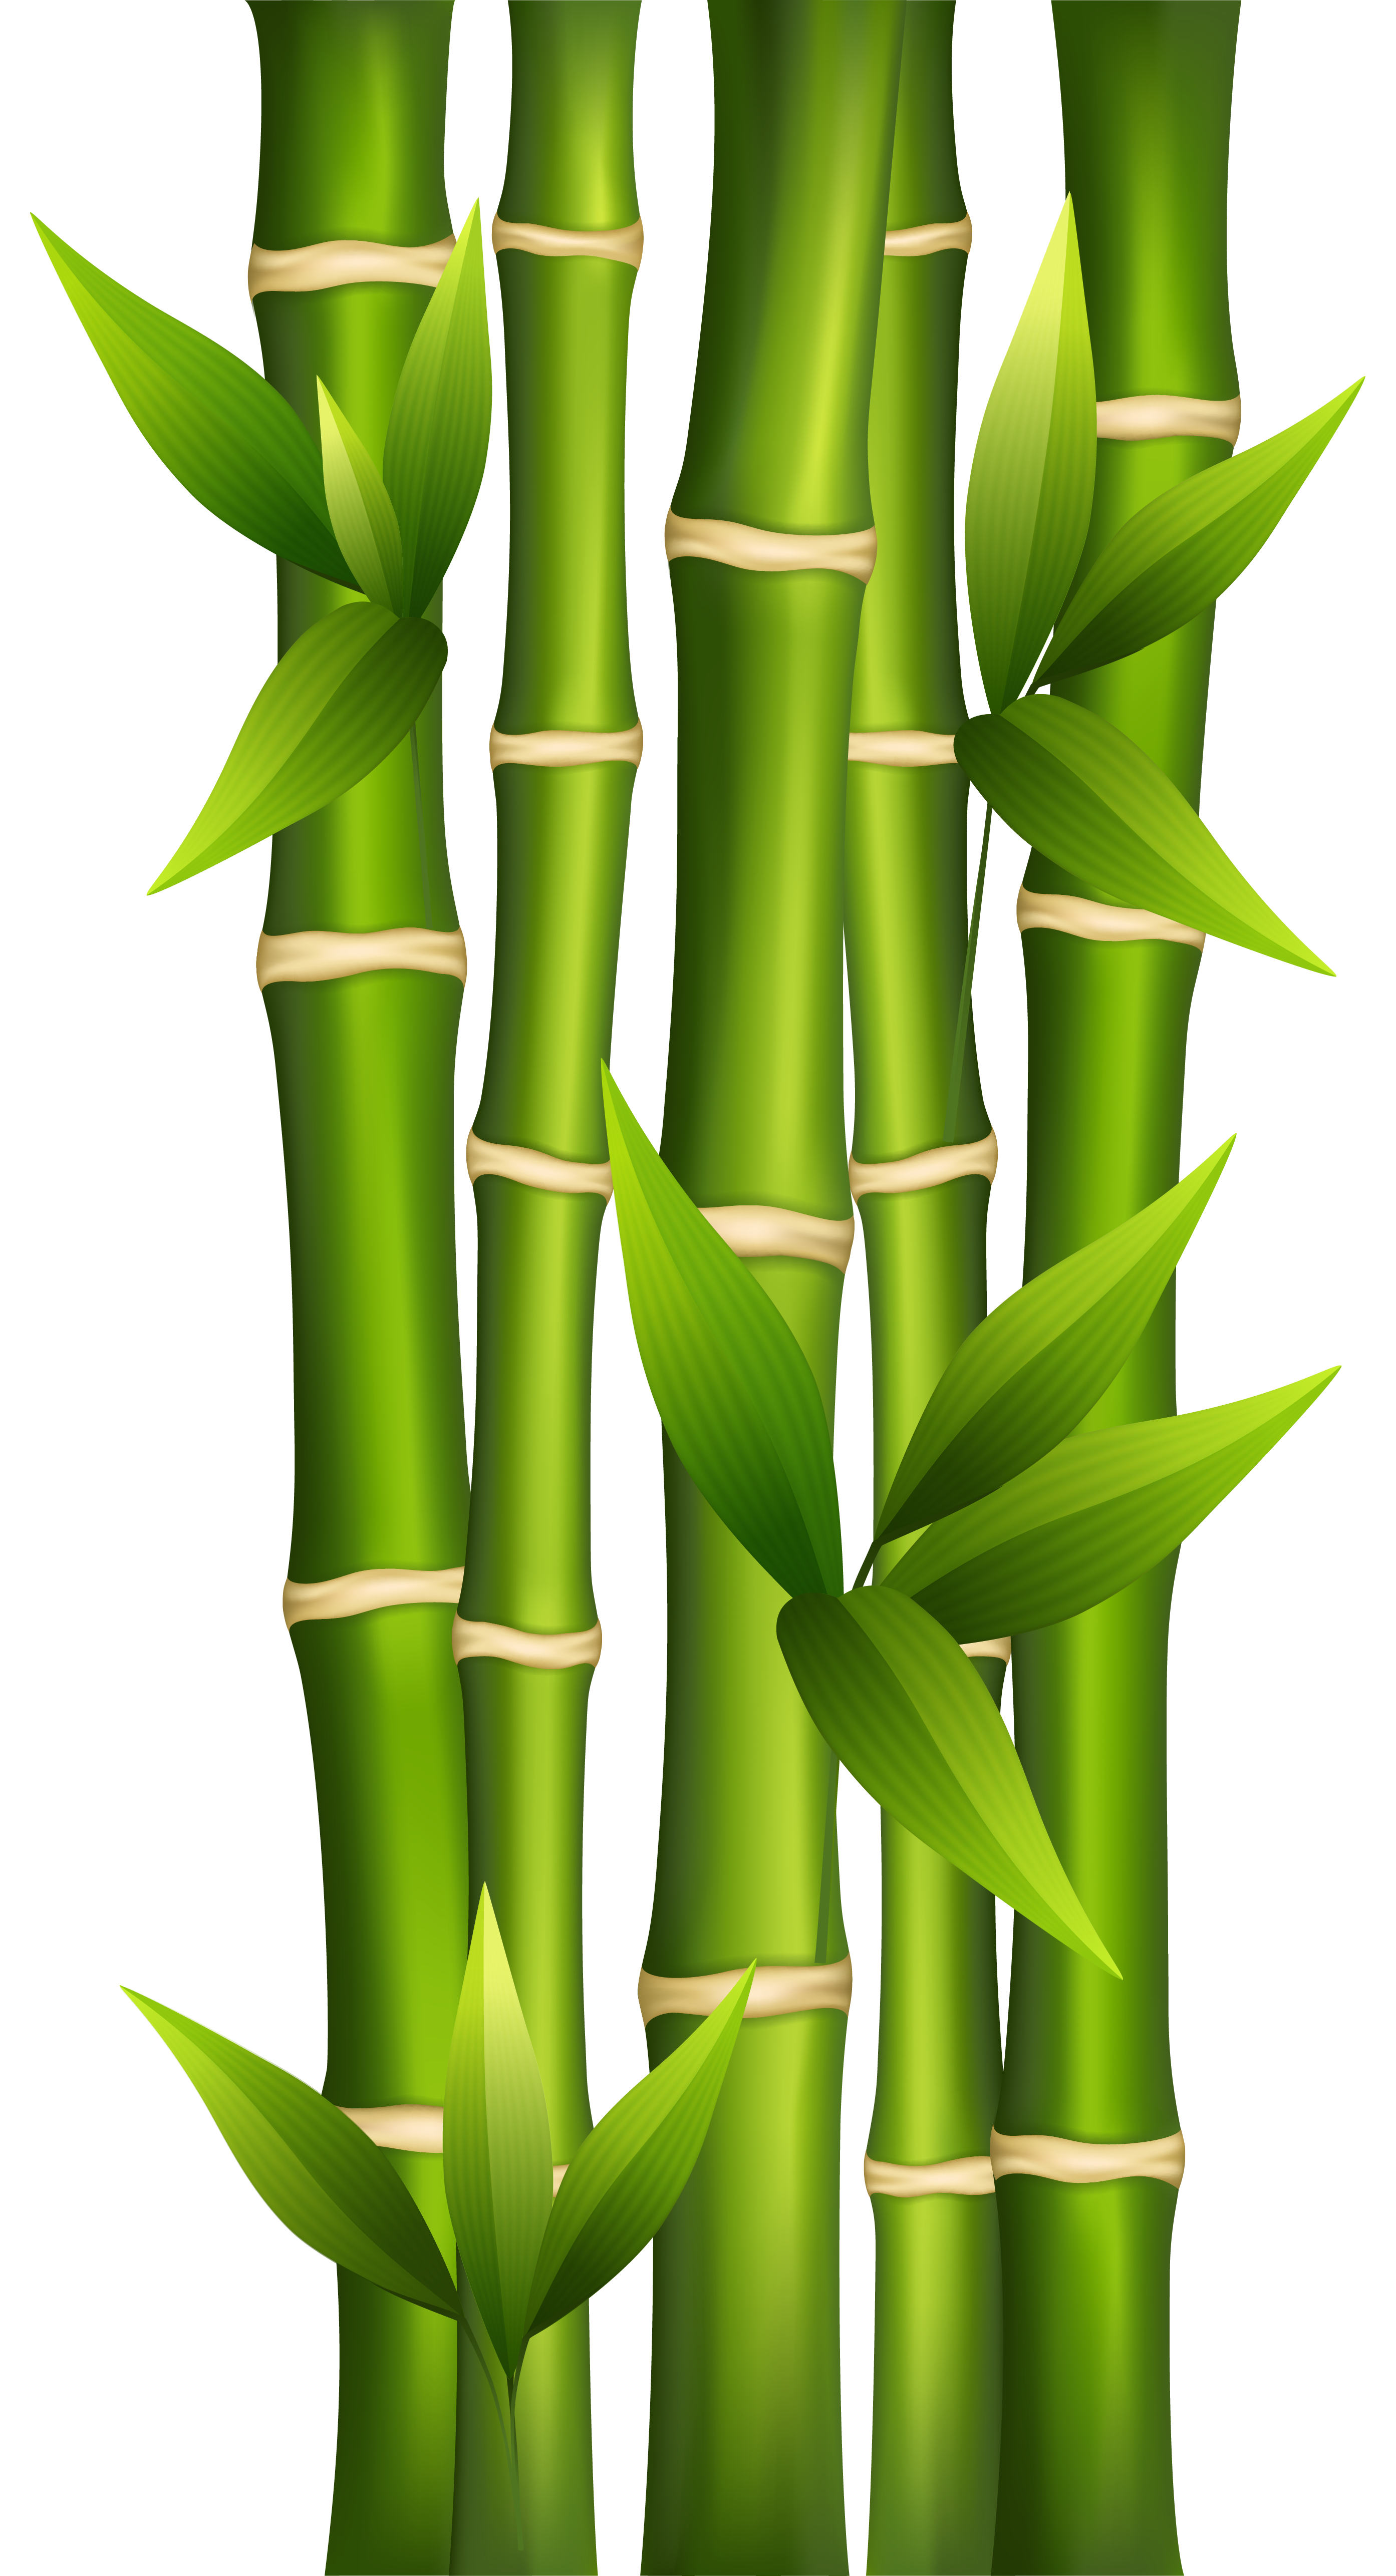 jpg freeuse library Png image gallery yopriceville. Bamboo clipart.